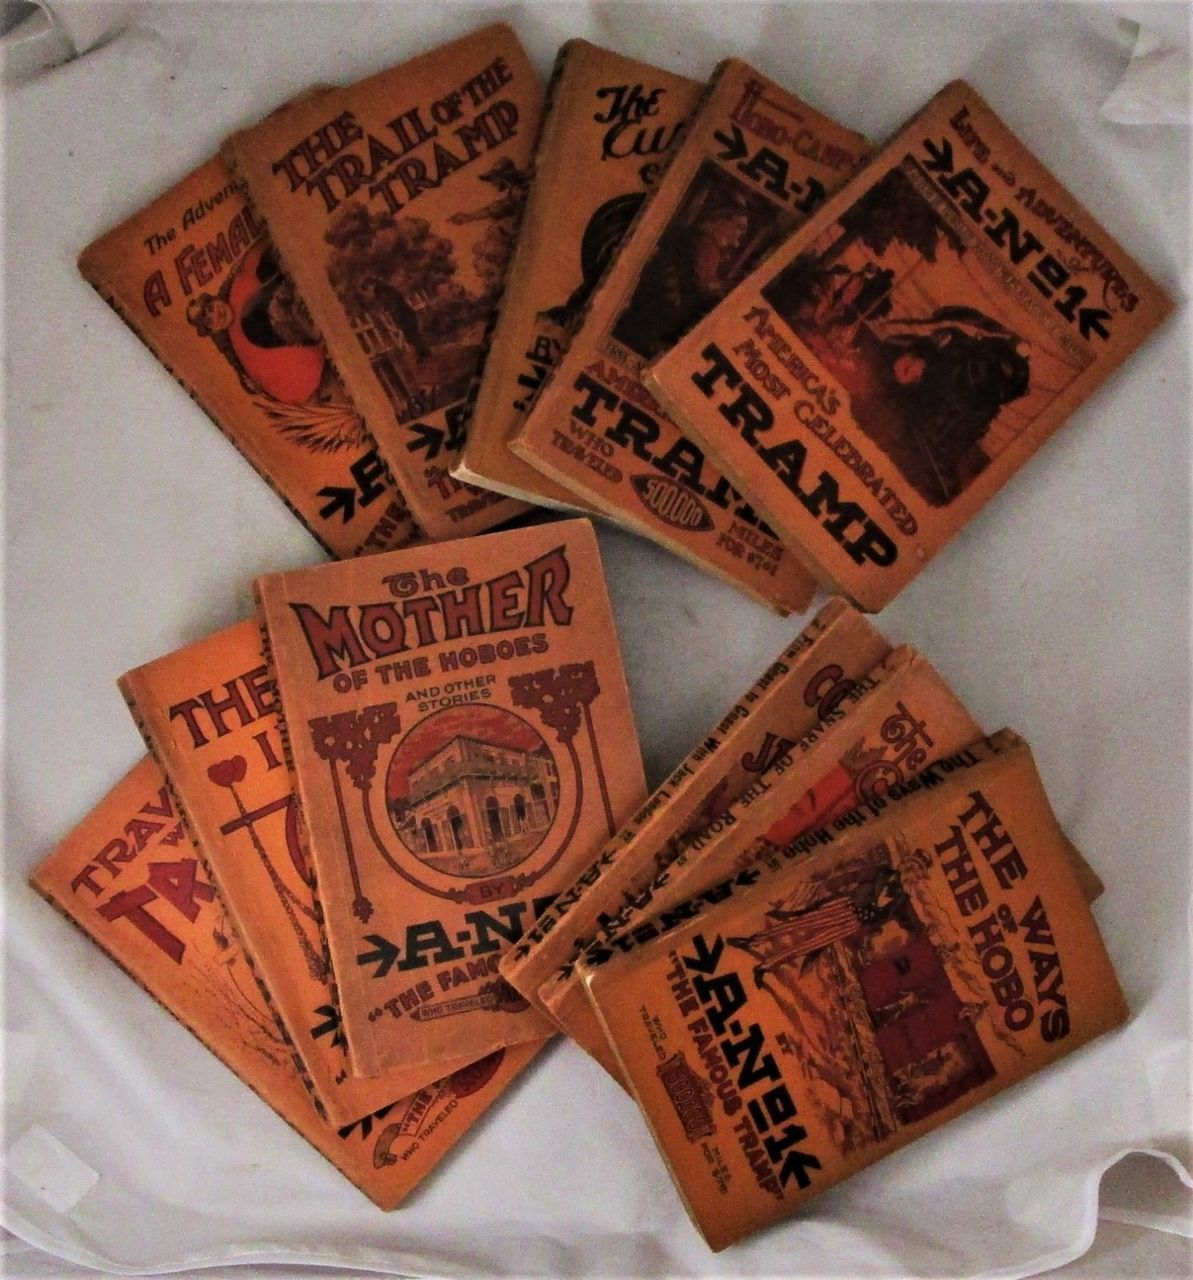 THE FAMOUS TRAMP, by A No.1 [Complete Set of 11] Jack London (3 1st-Prints) 1910